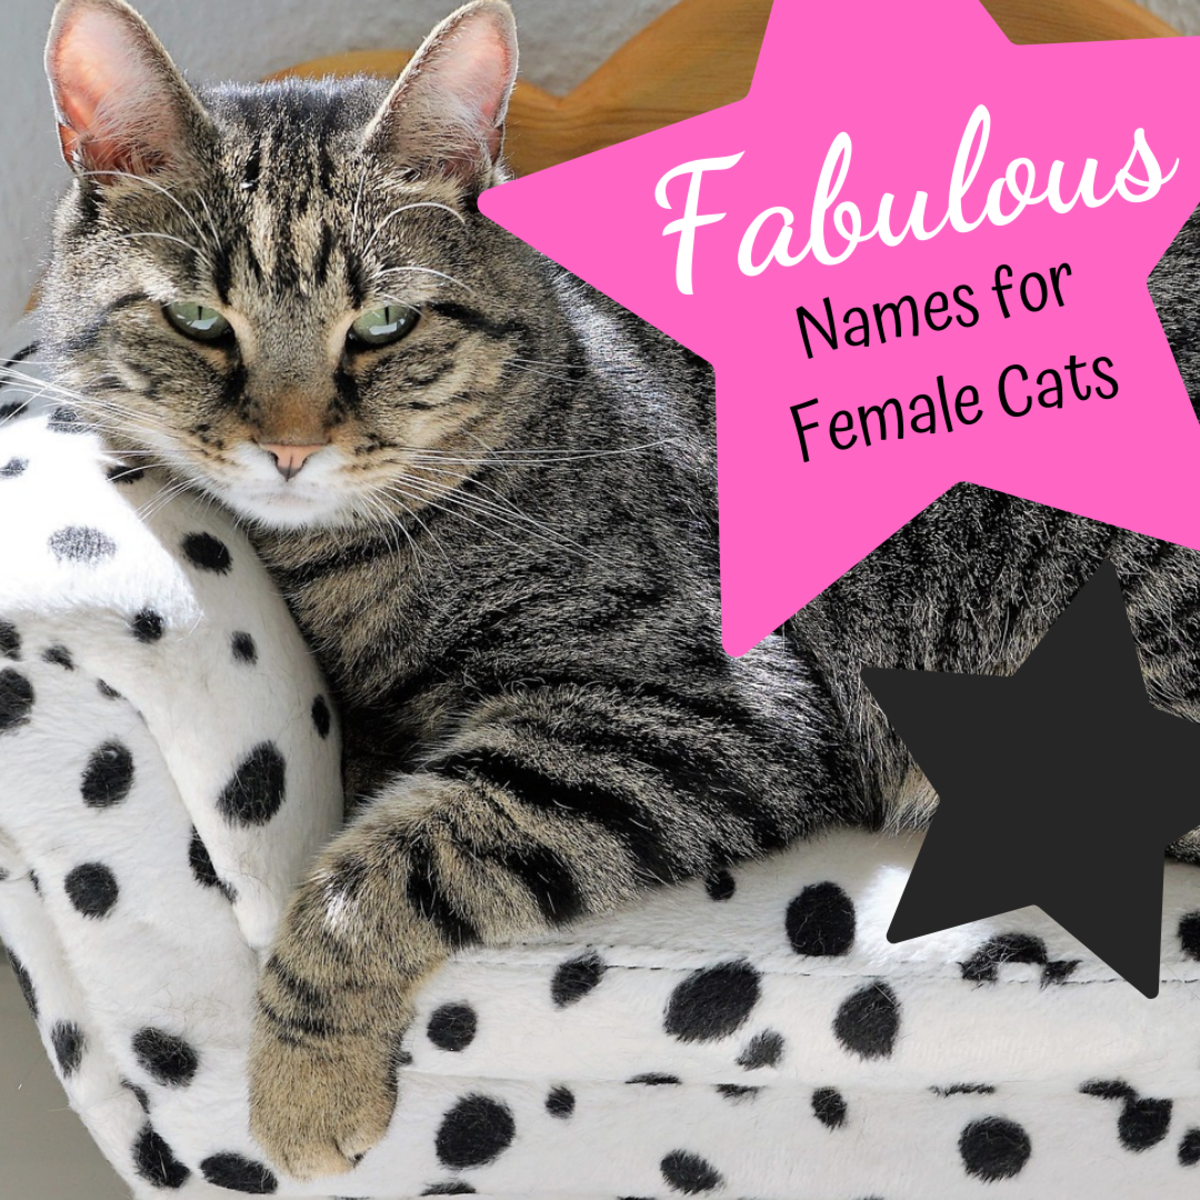 Is your cat fabulous? Find the perfect name for her below!